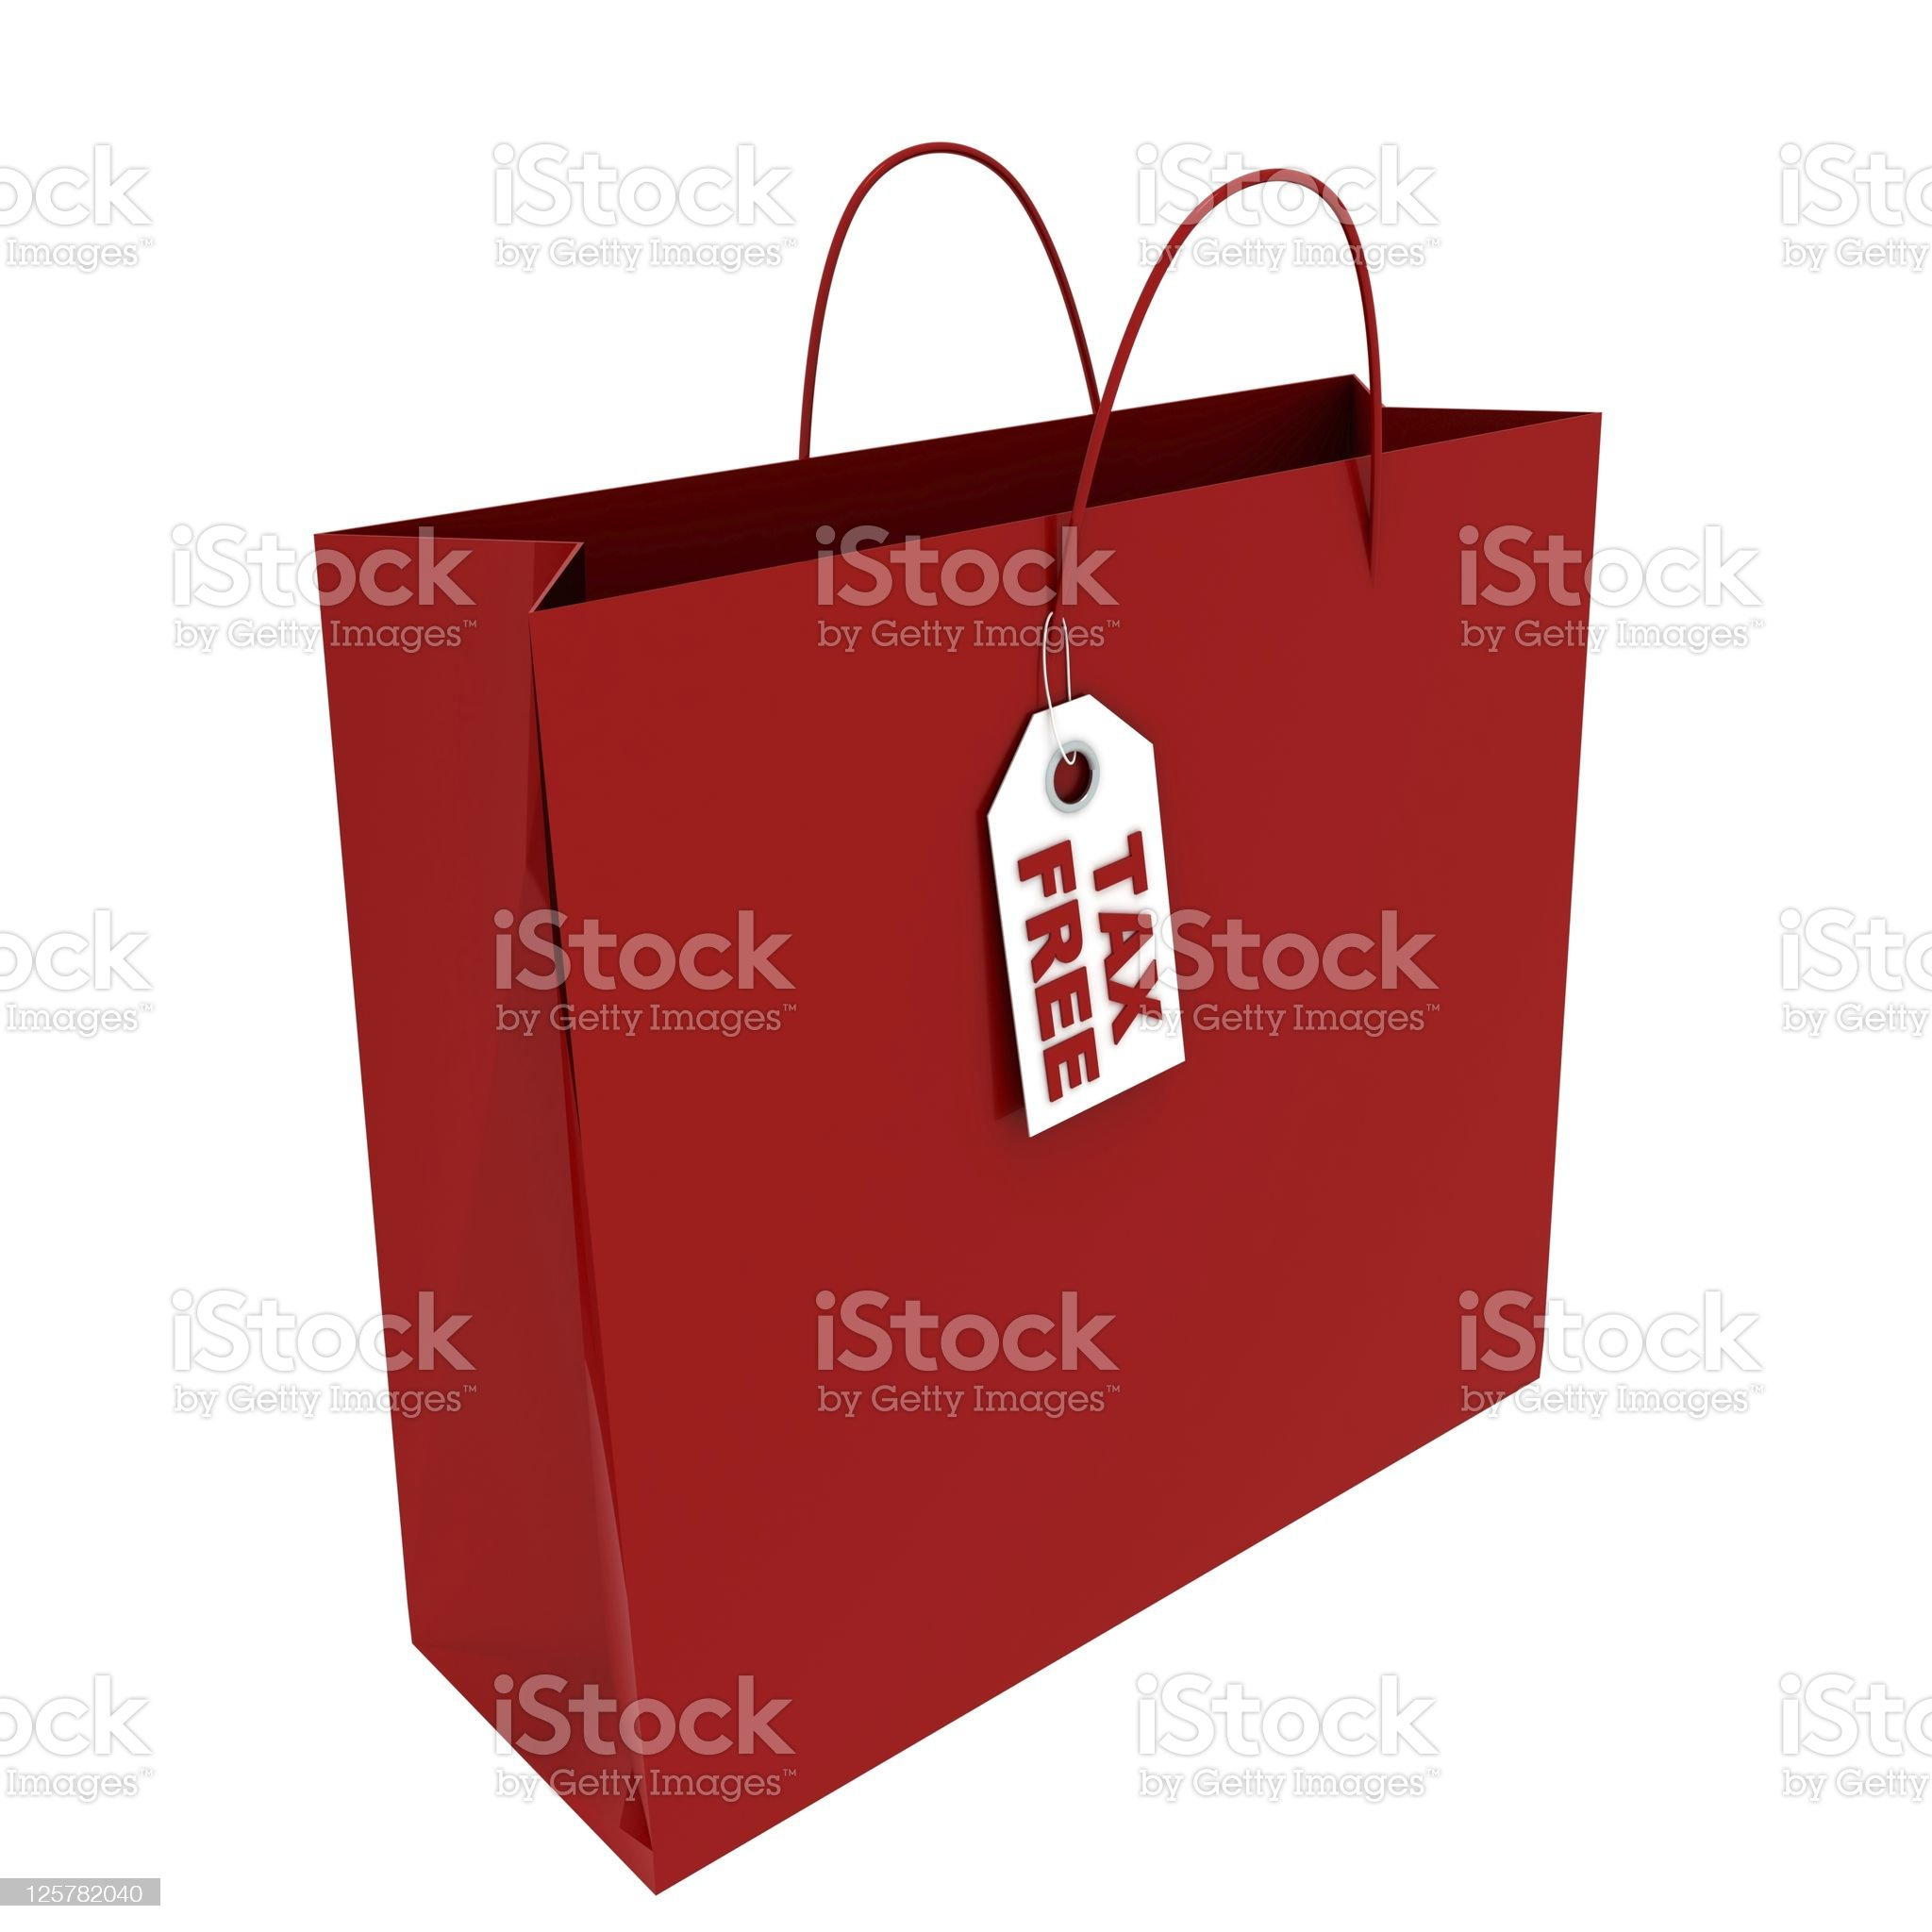 Tax Free Shopping royalty-free stock photo